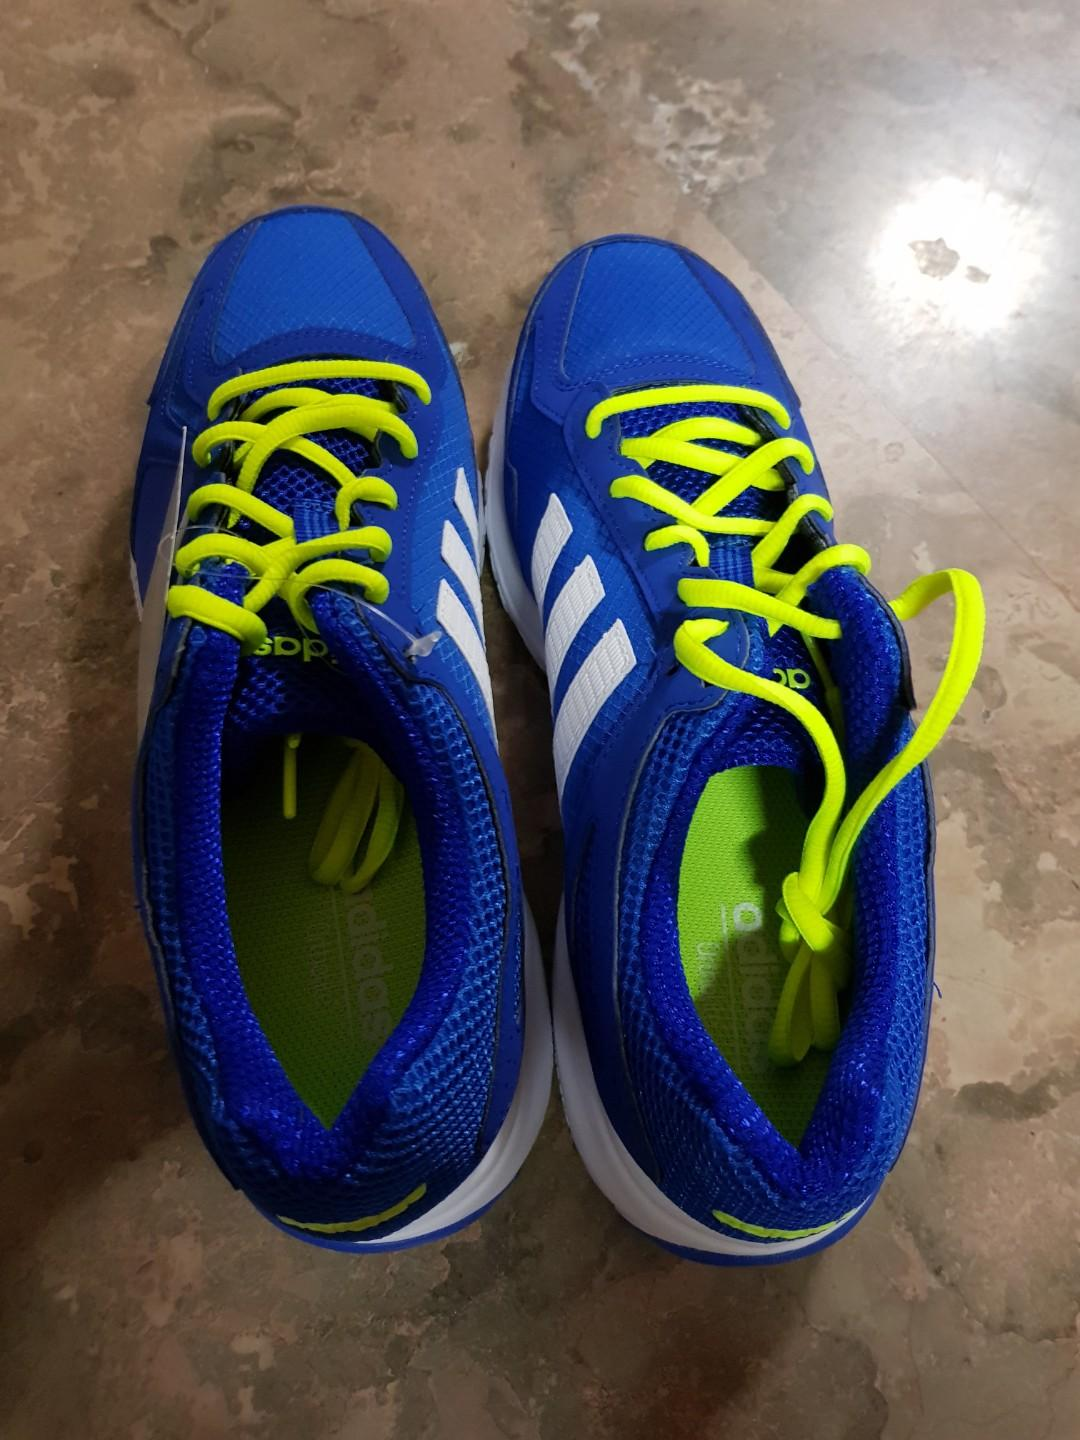 adidas blue and lime green shoes